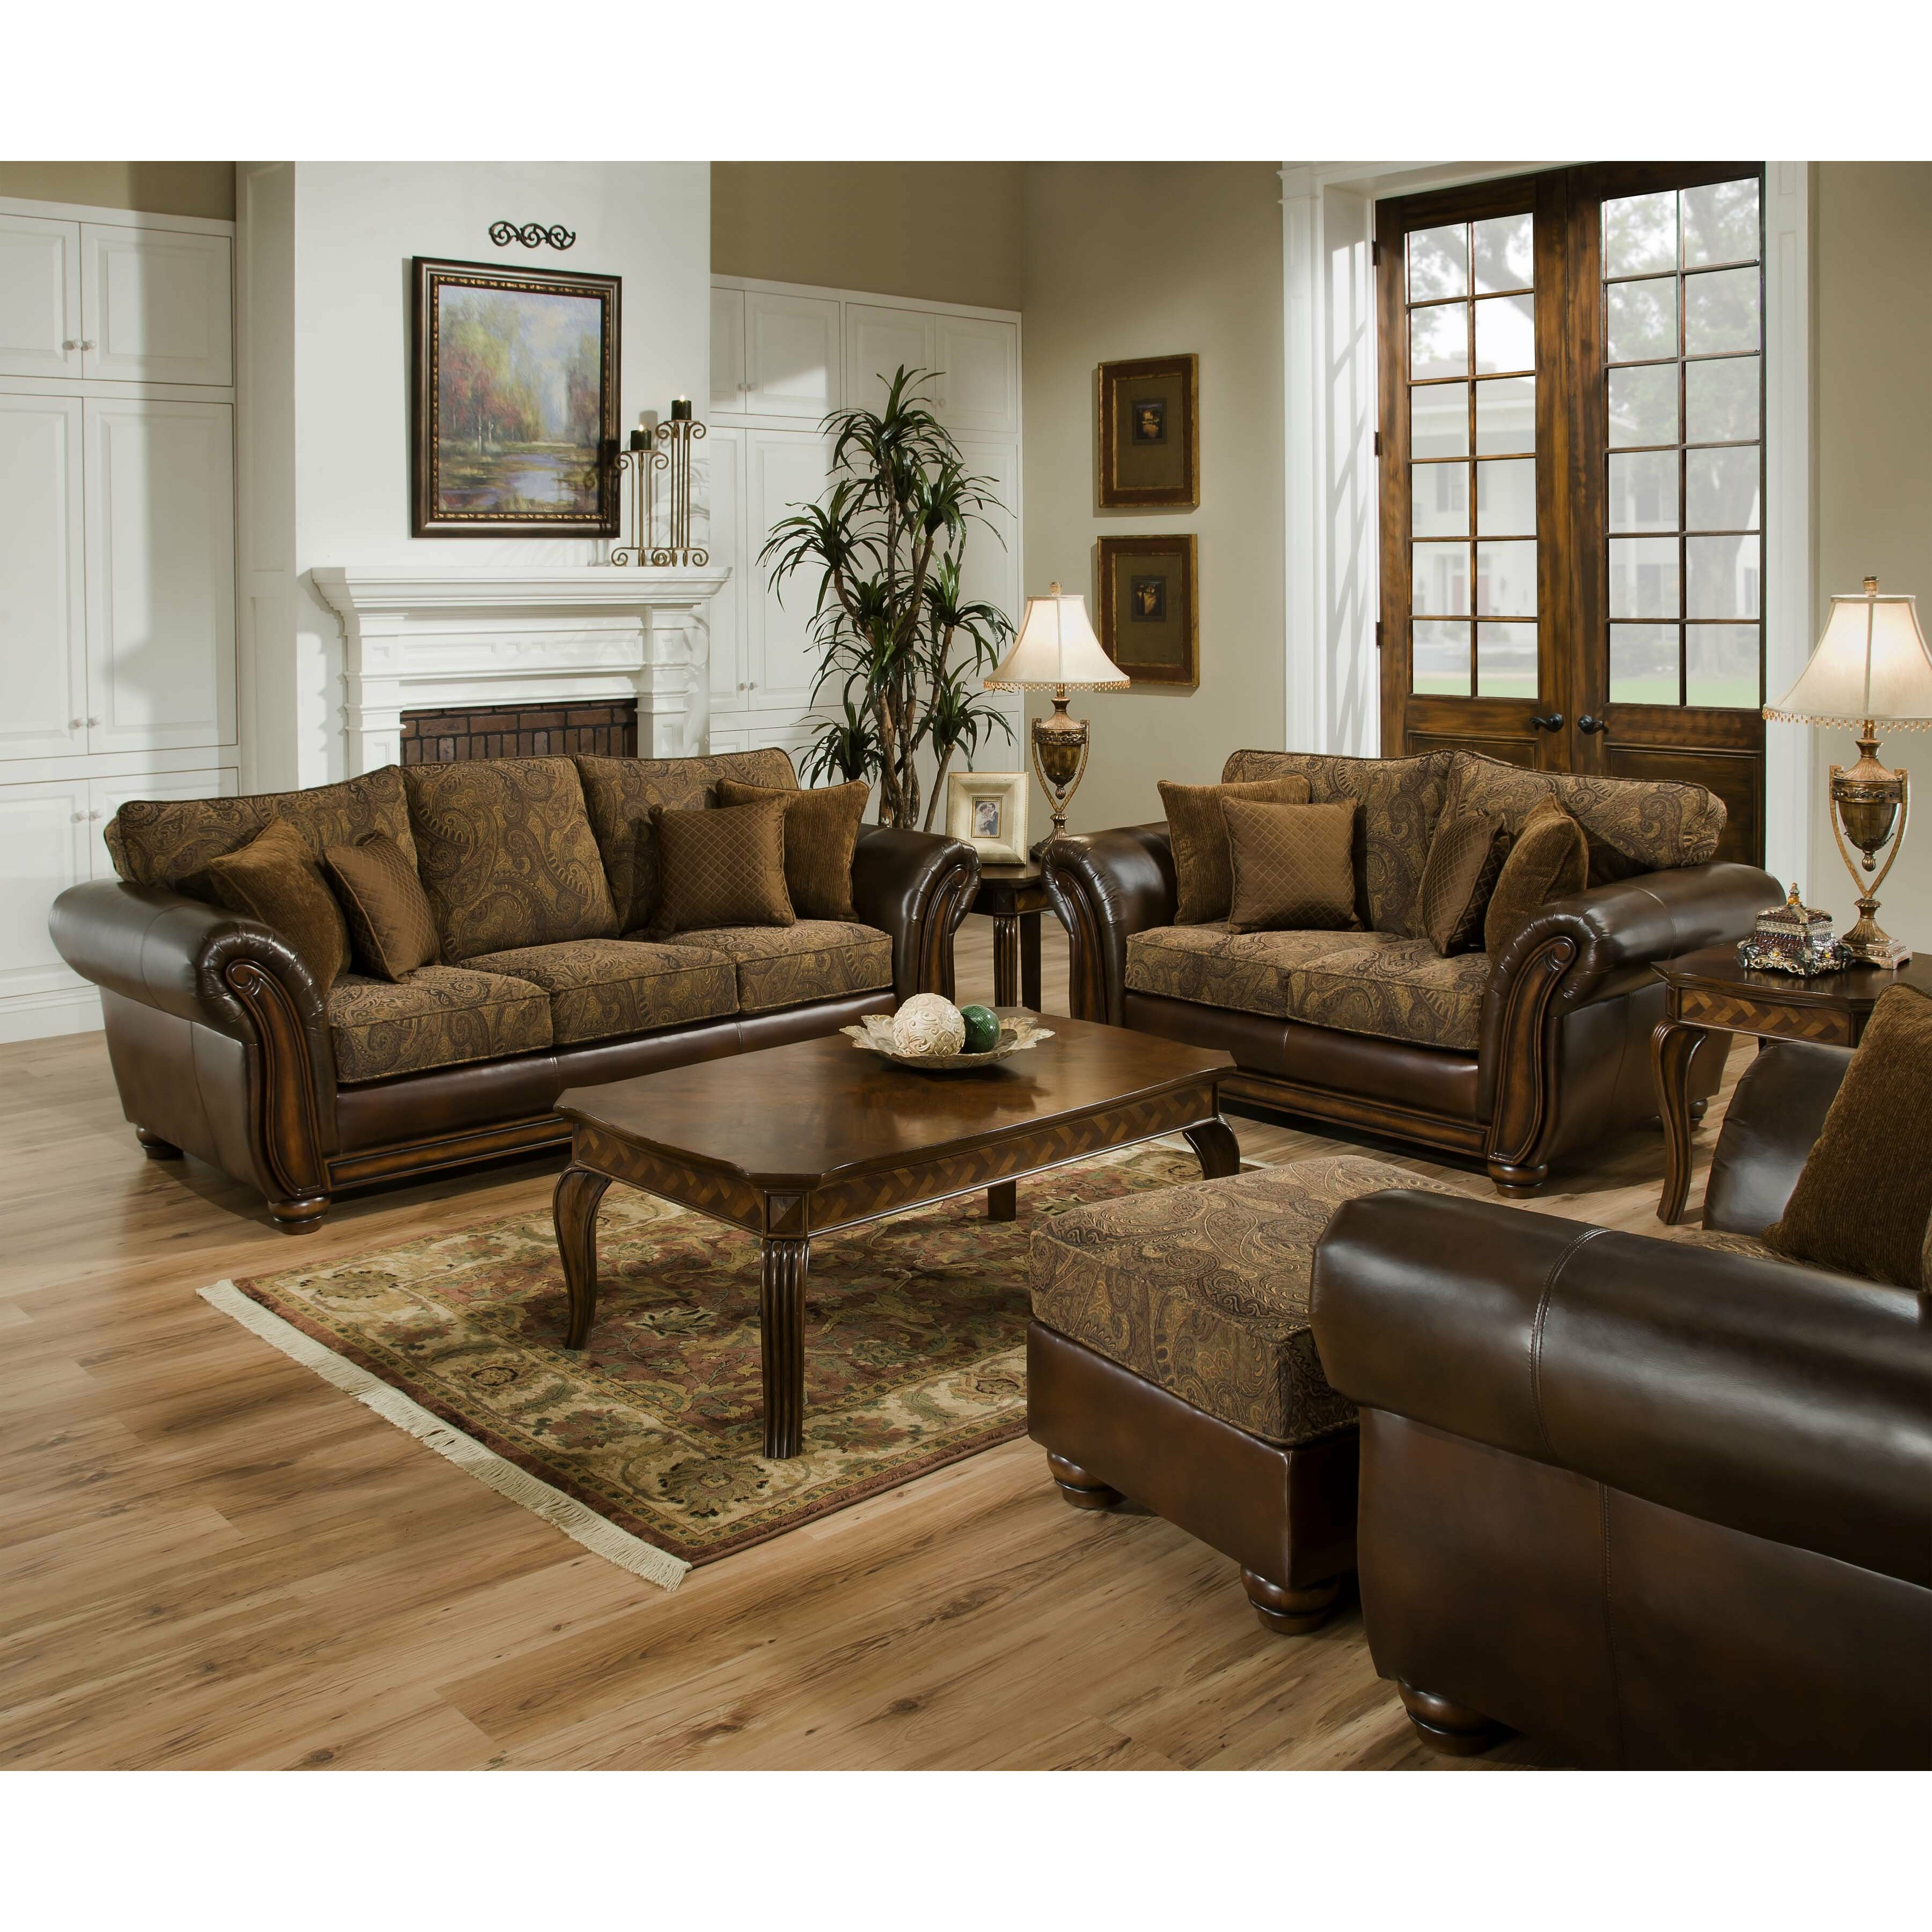 Furniture living room furniture living room sets astoria grand sku